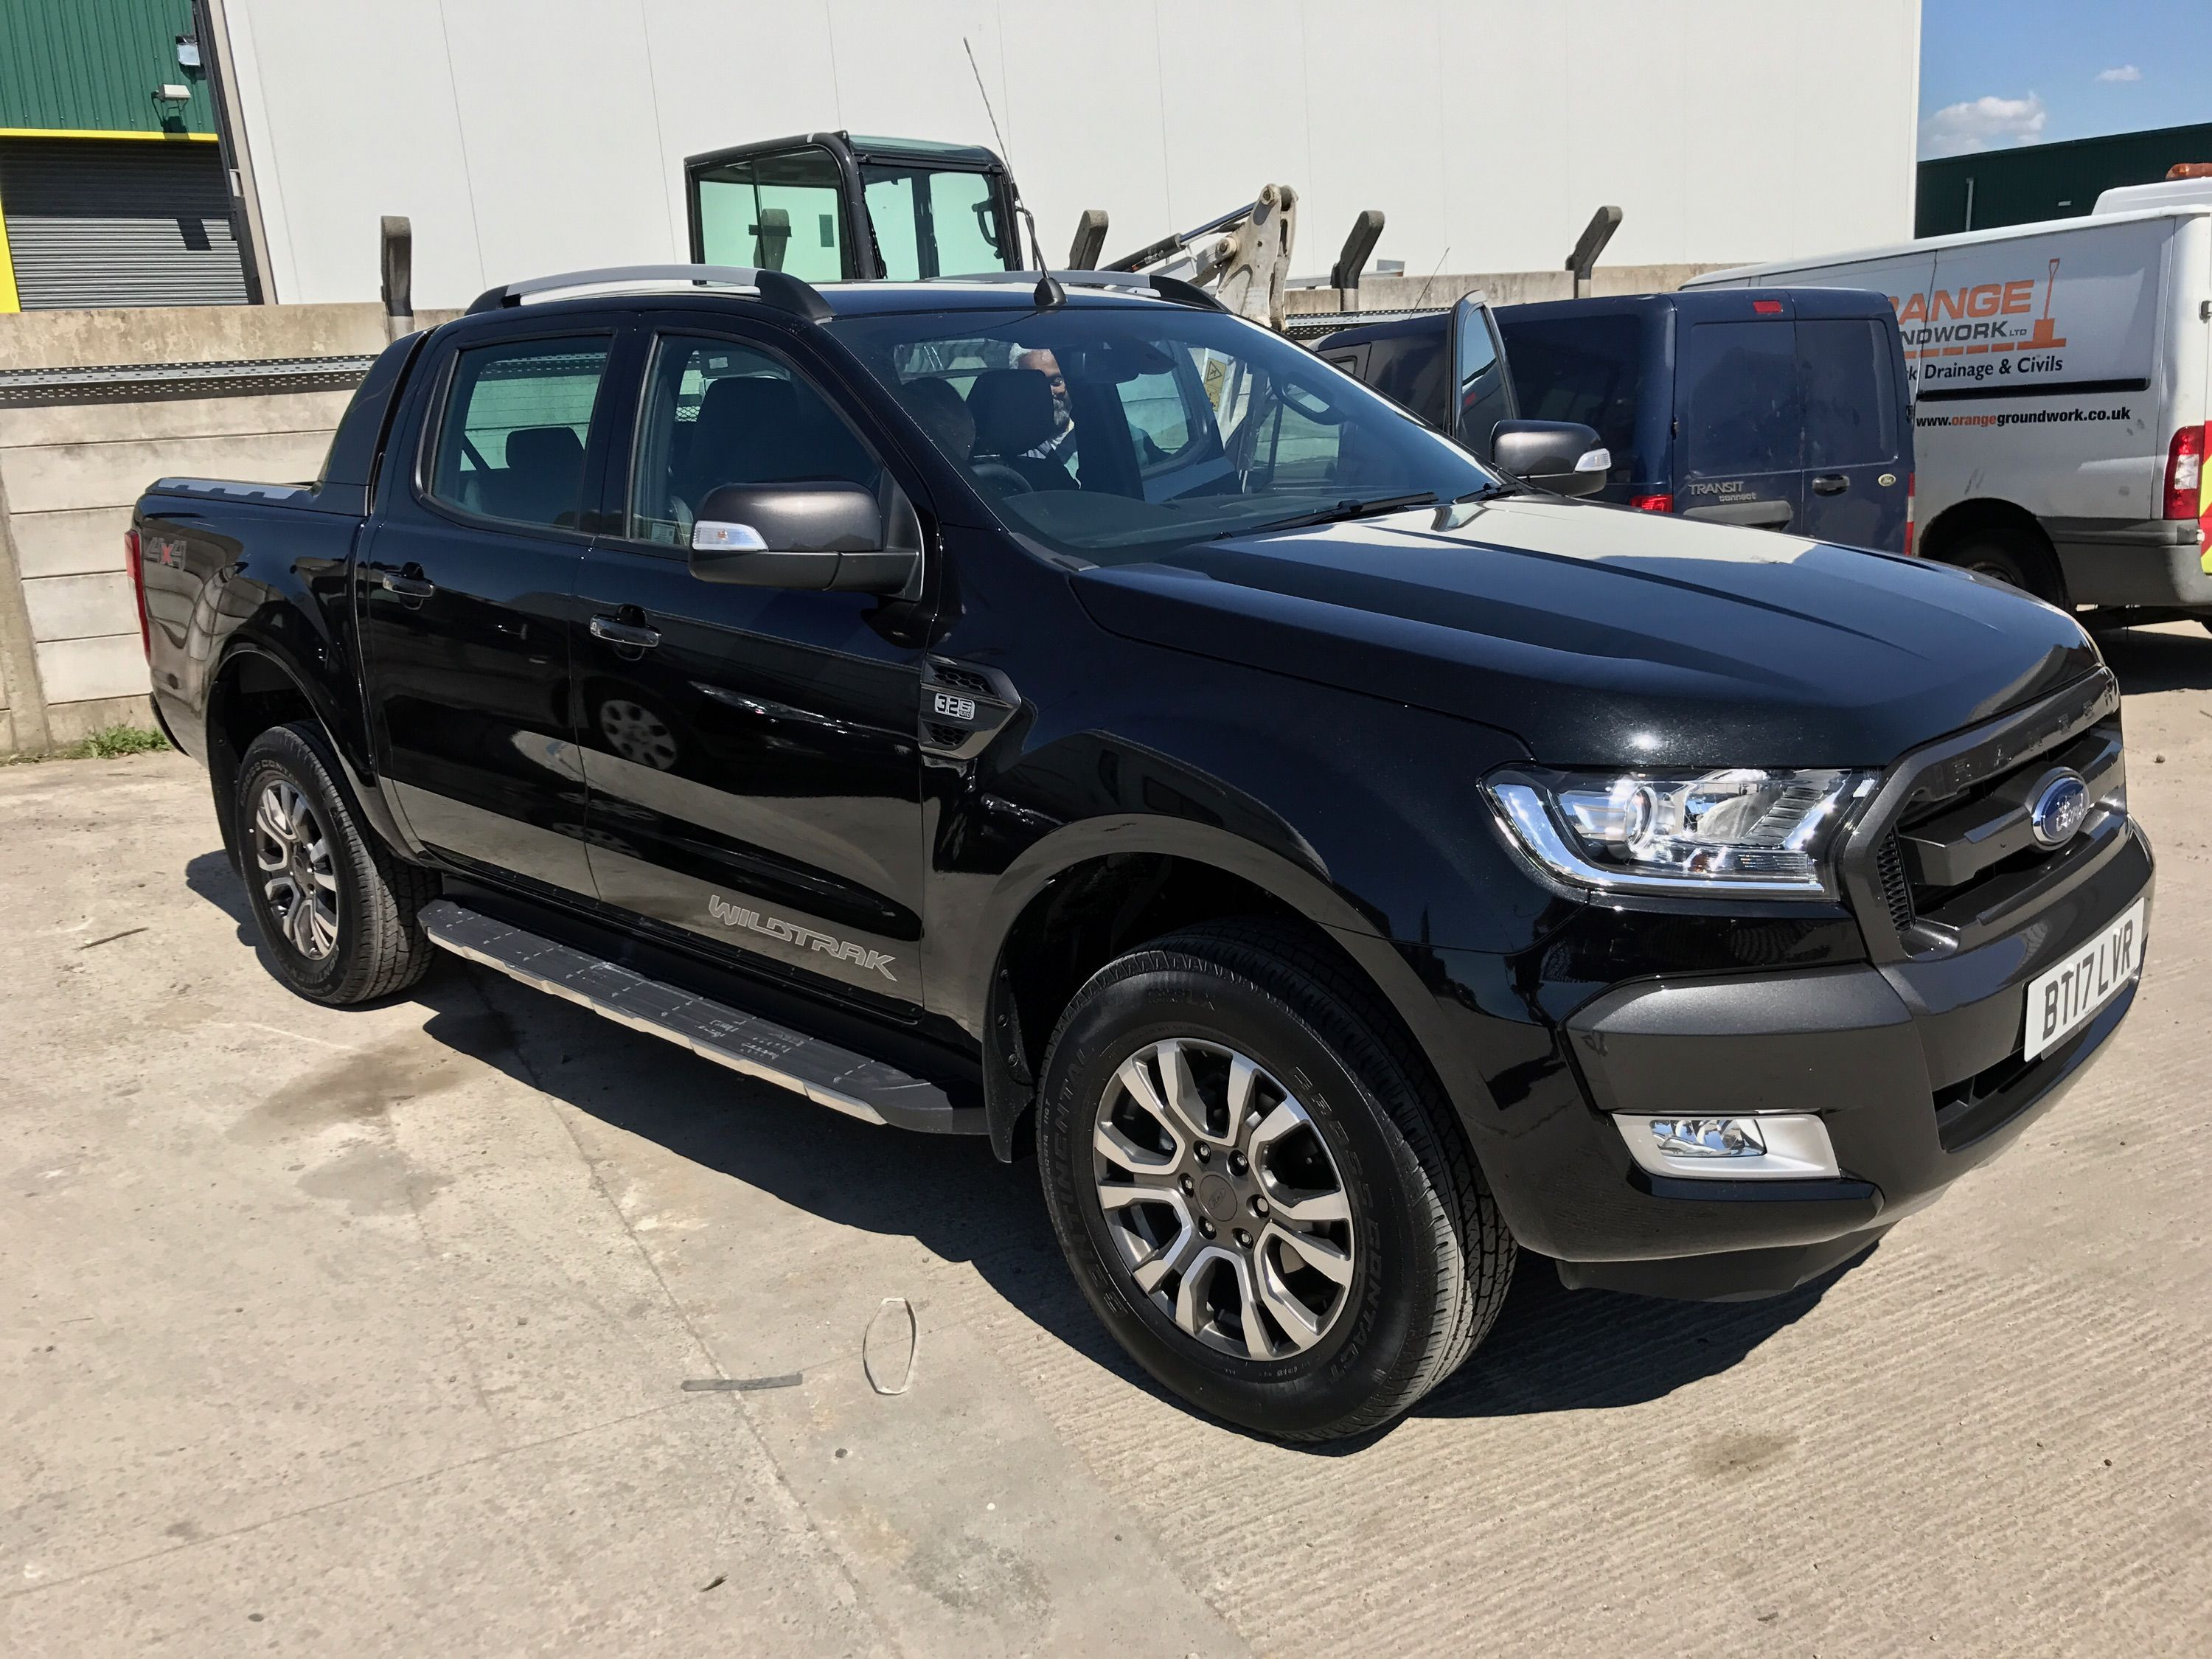 The Ford Ranger Wildtrak Leasing Deal One Of The Many Cars And Vans Available To Lease From Www Carlease Uk Com Ford Ranger Wildtrak Car Lease Ford Ranger